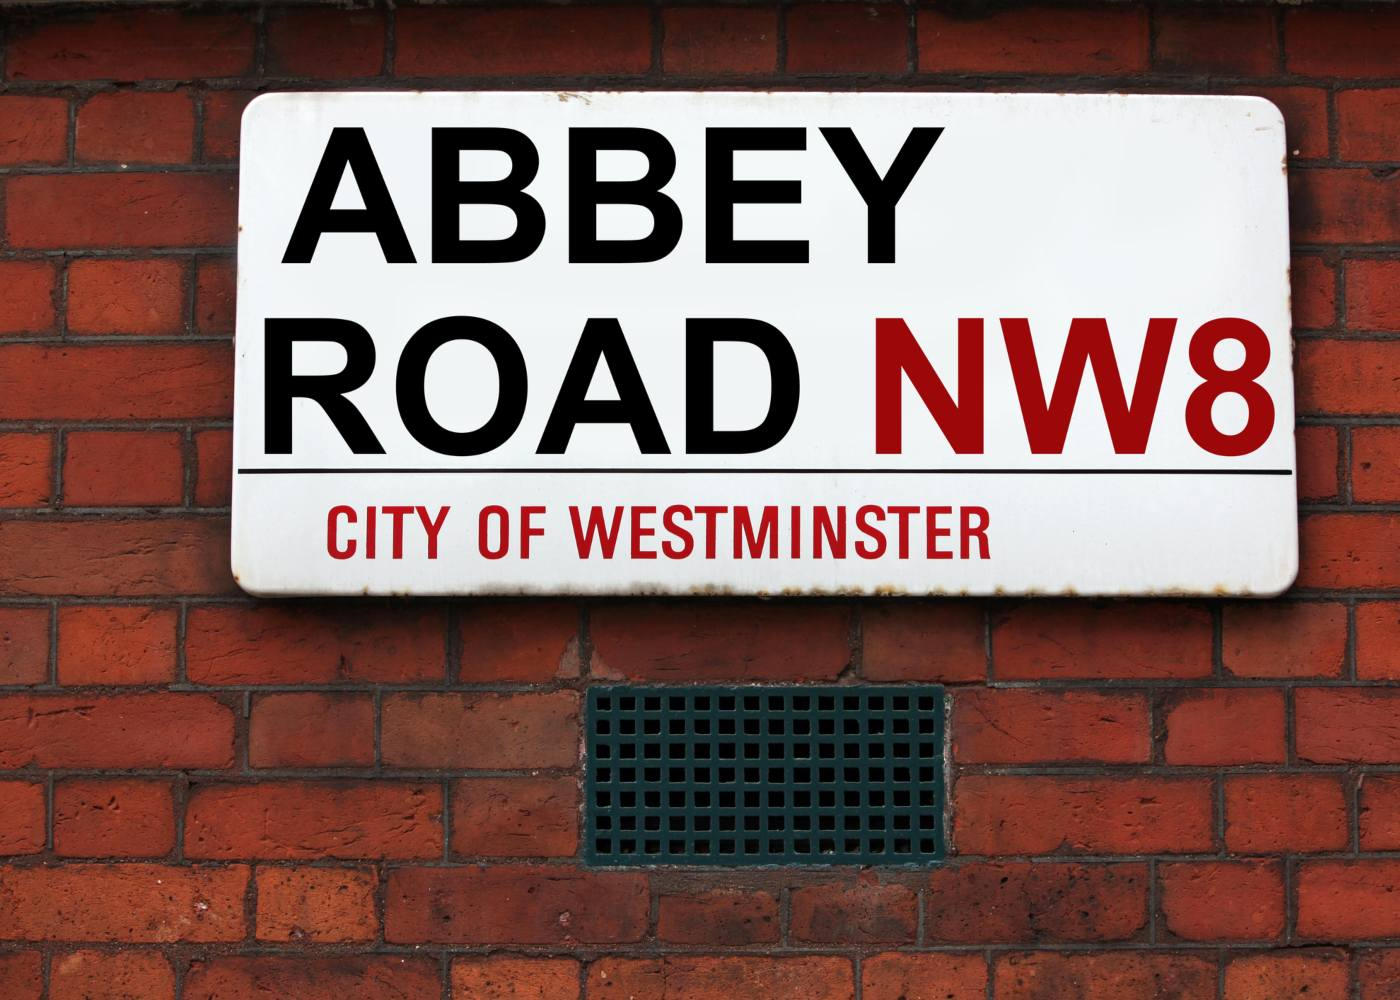 Placa de Abbey Road em Londres